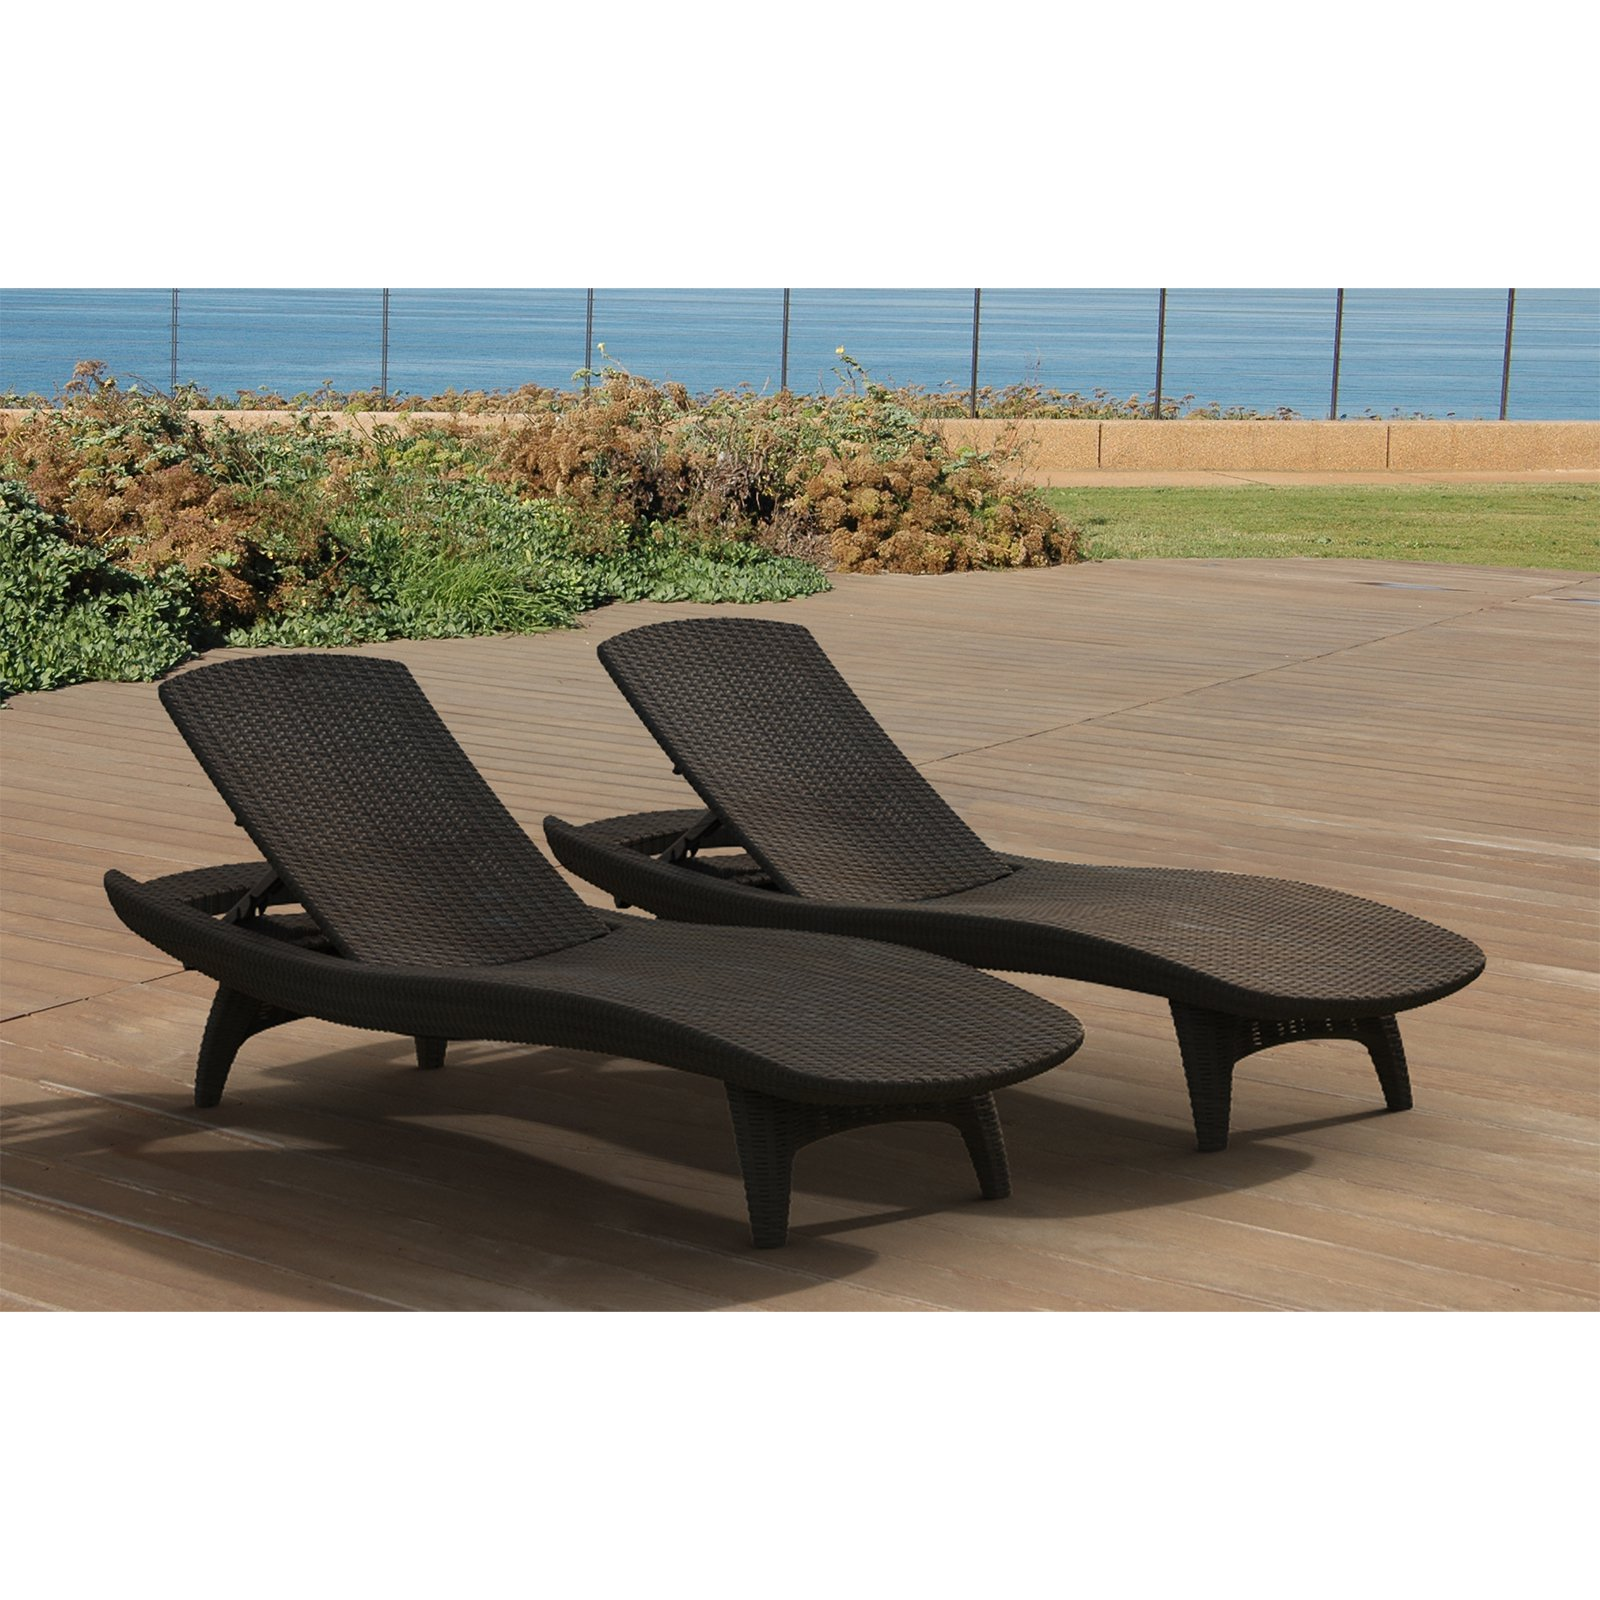 Image of: Model of Pool Chaise Lounge Chairs